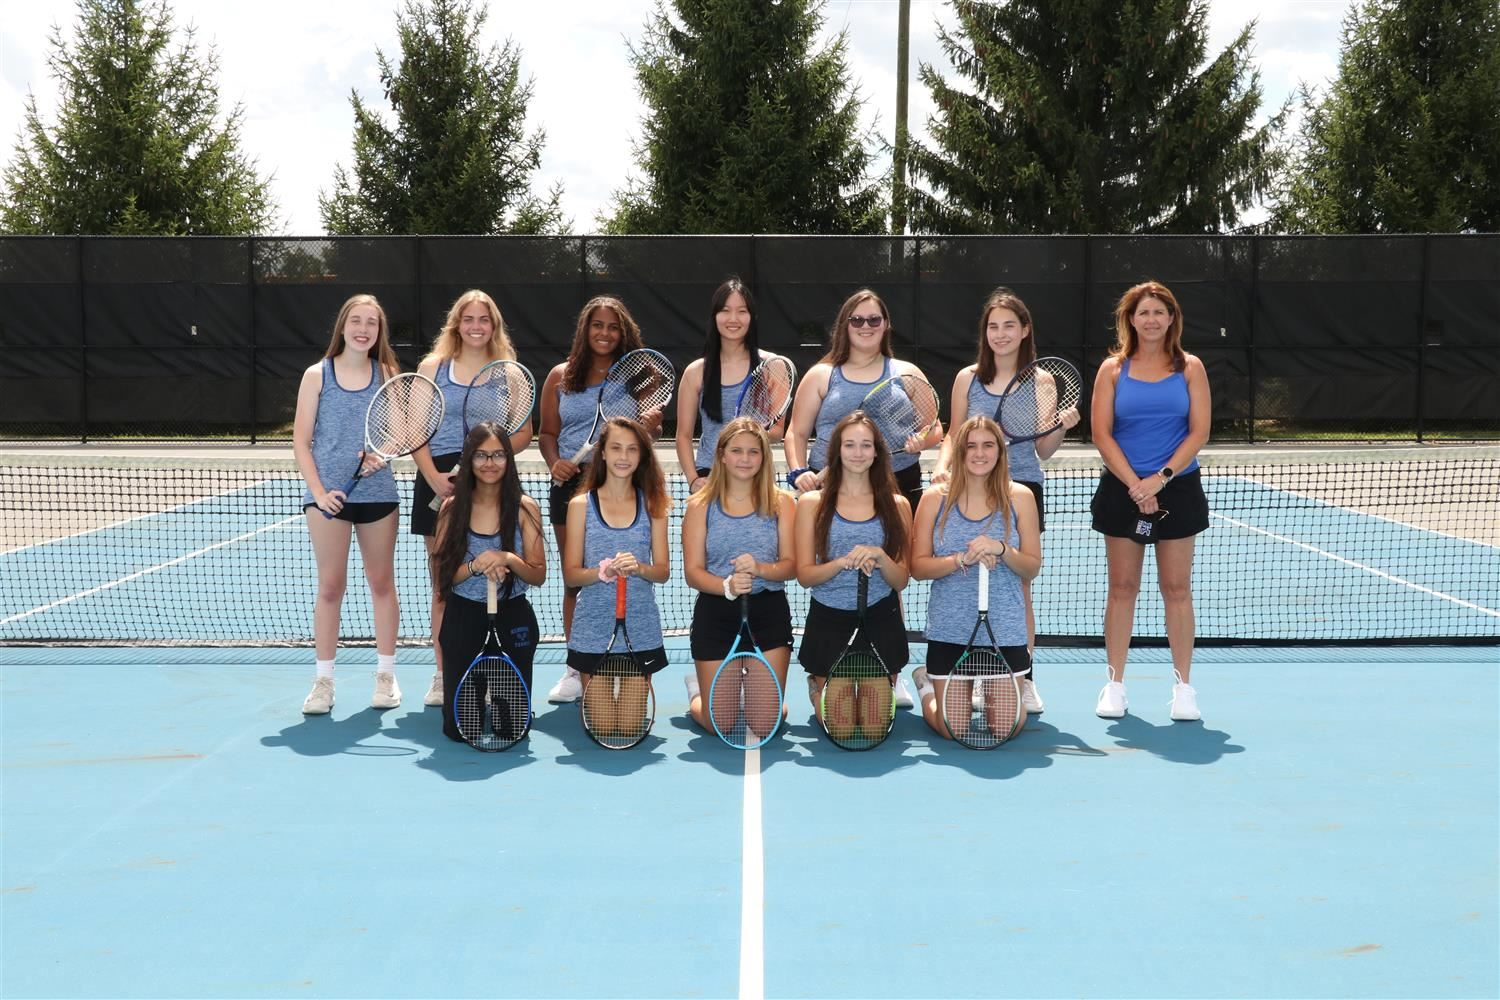 JV Tennis Team Picture